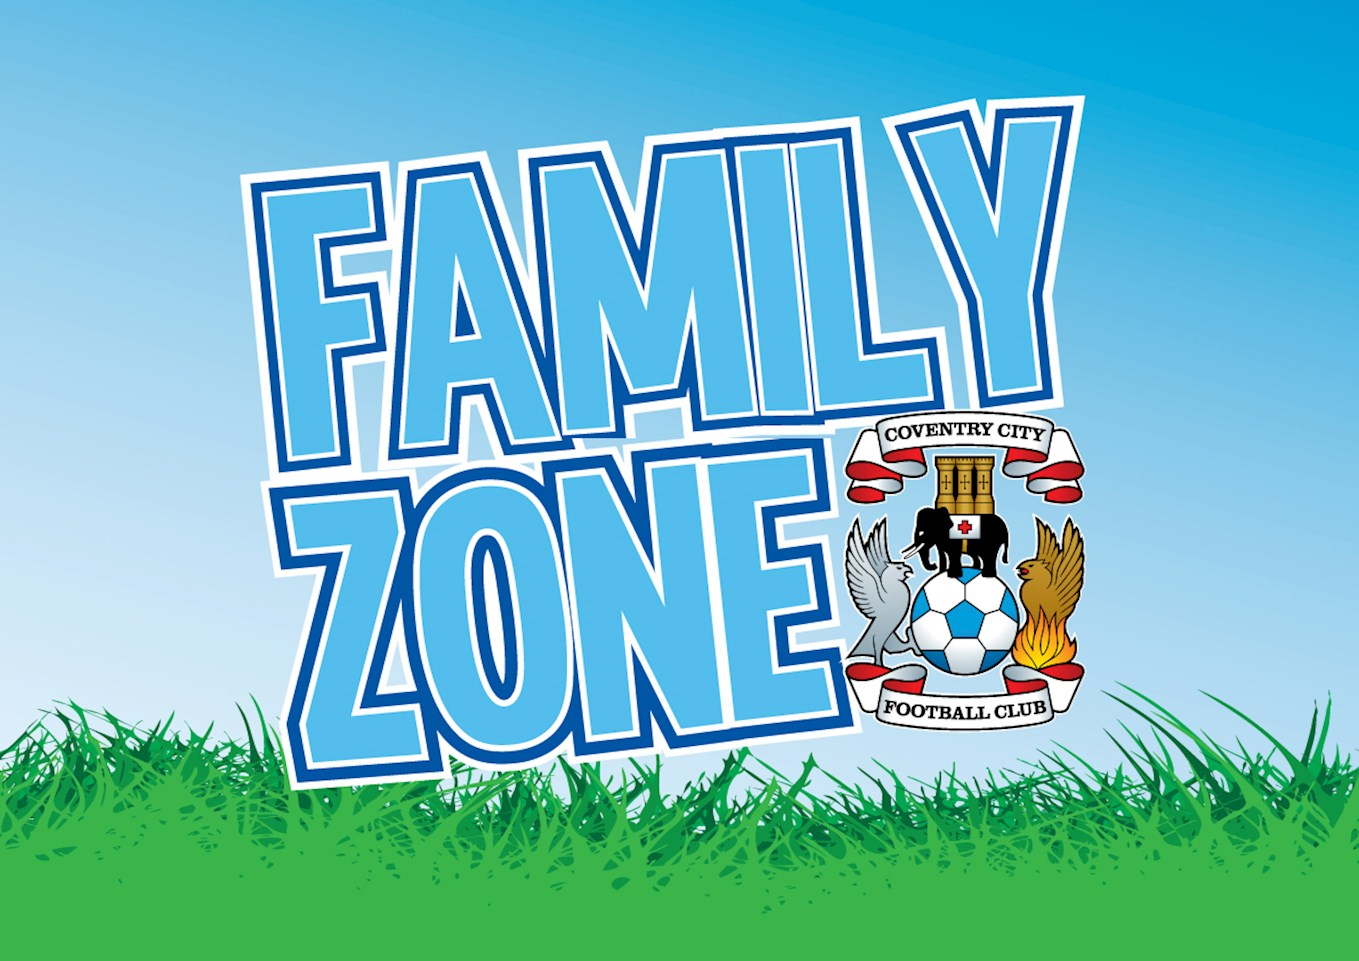 NEWS: Sky Blues Family Zone to continue at St Andrew's